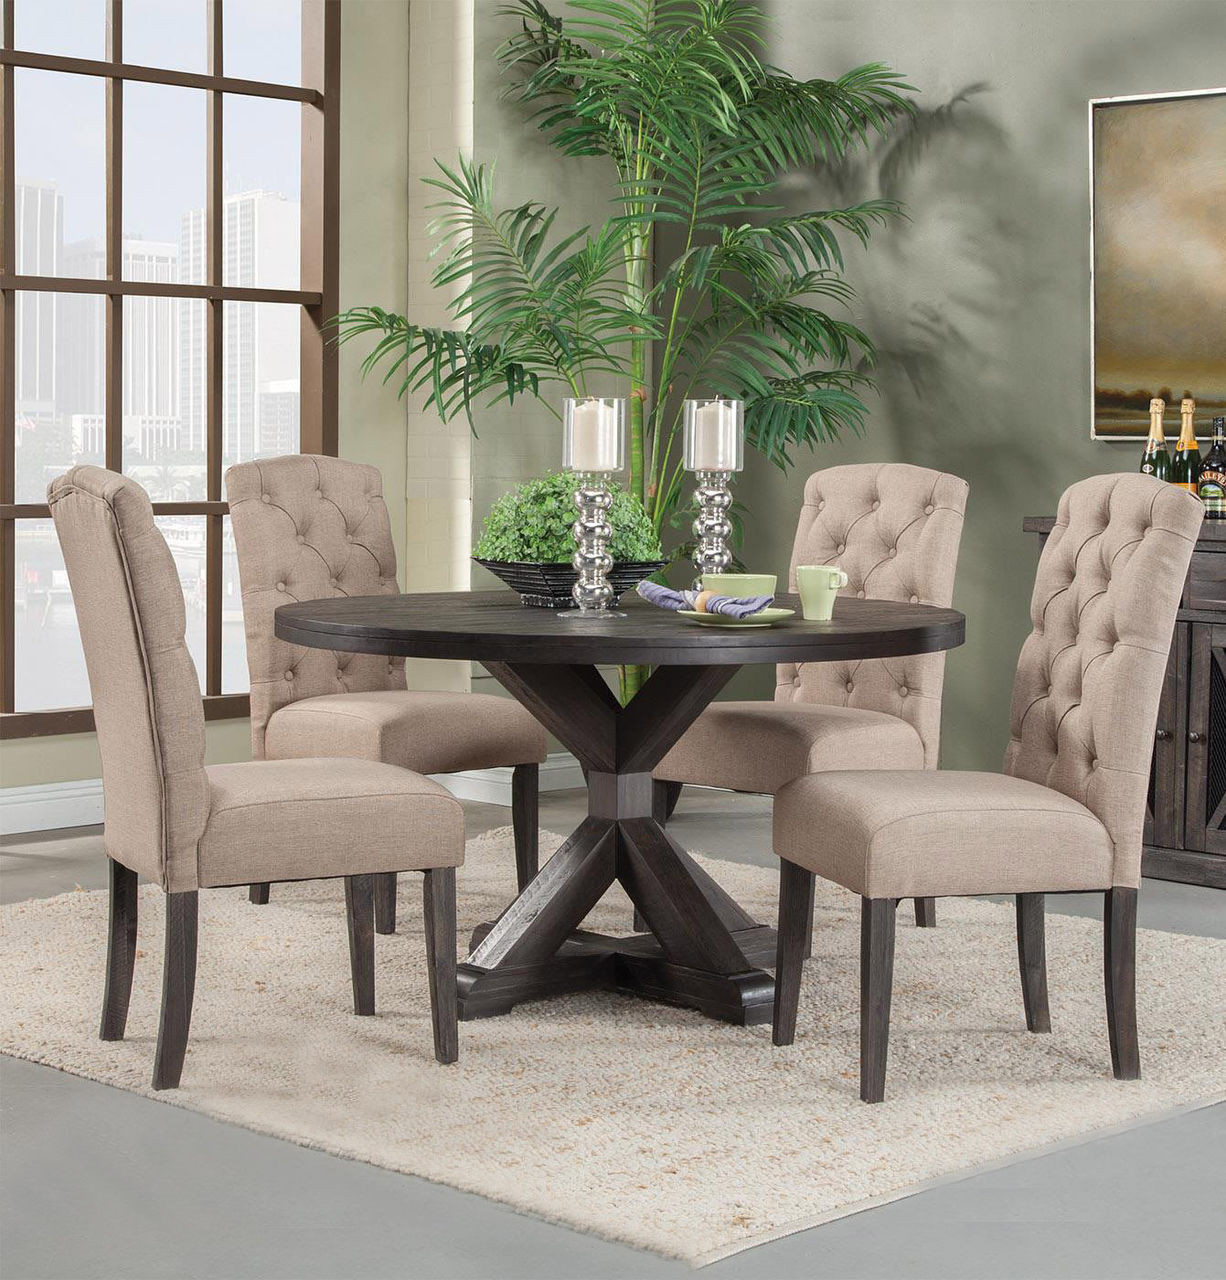 Alpine Newberry 54 Quot Round Dining Room Table Set In